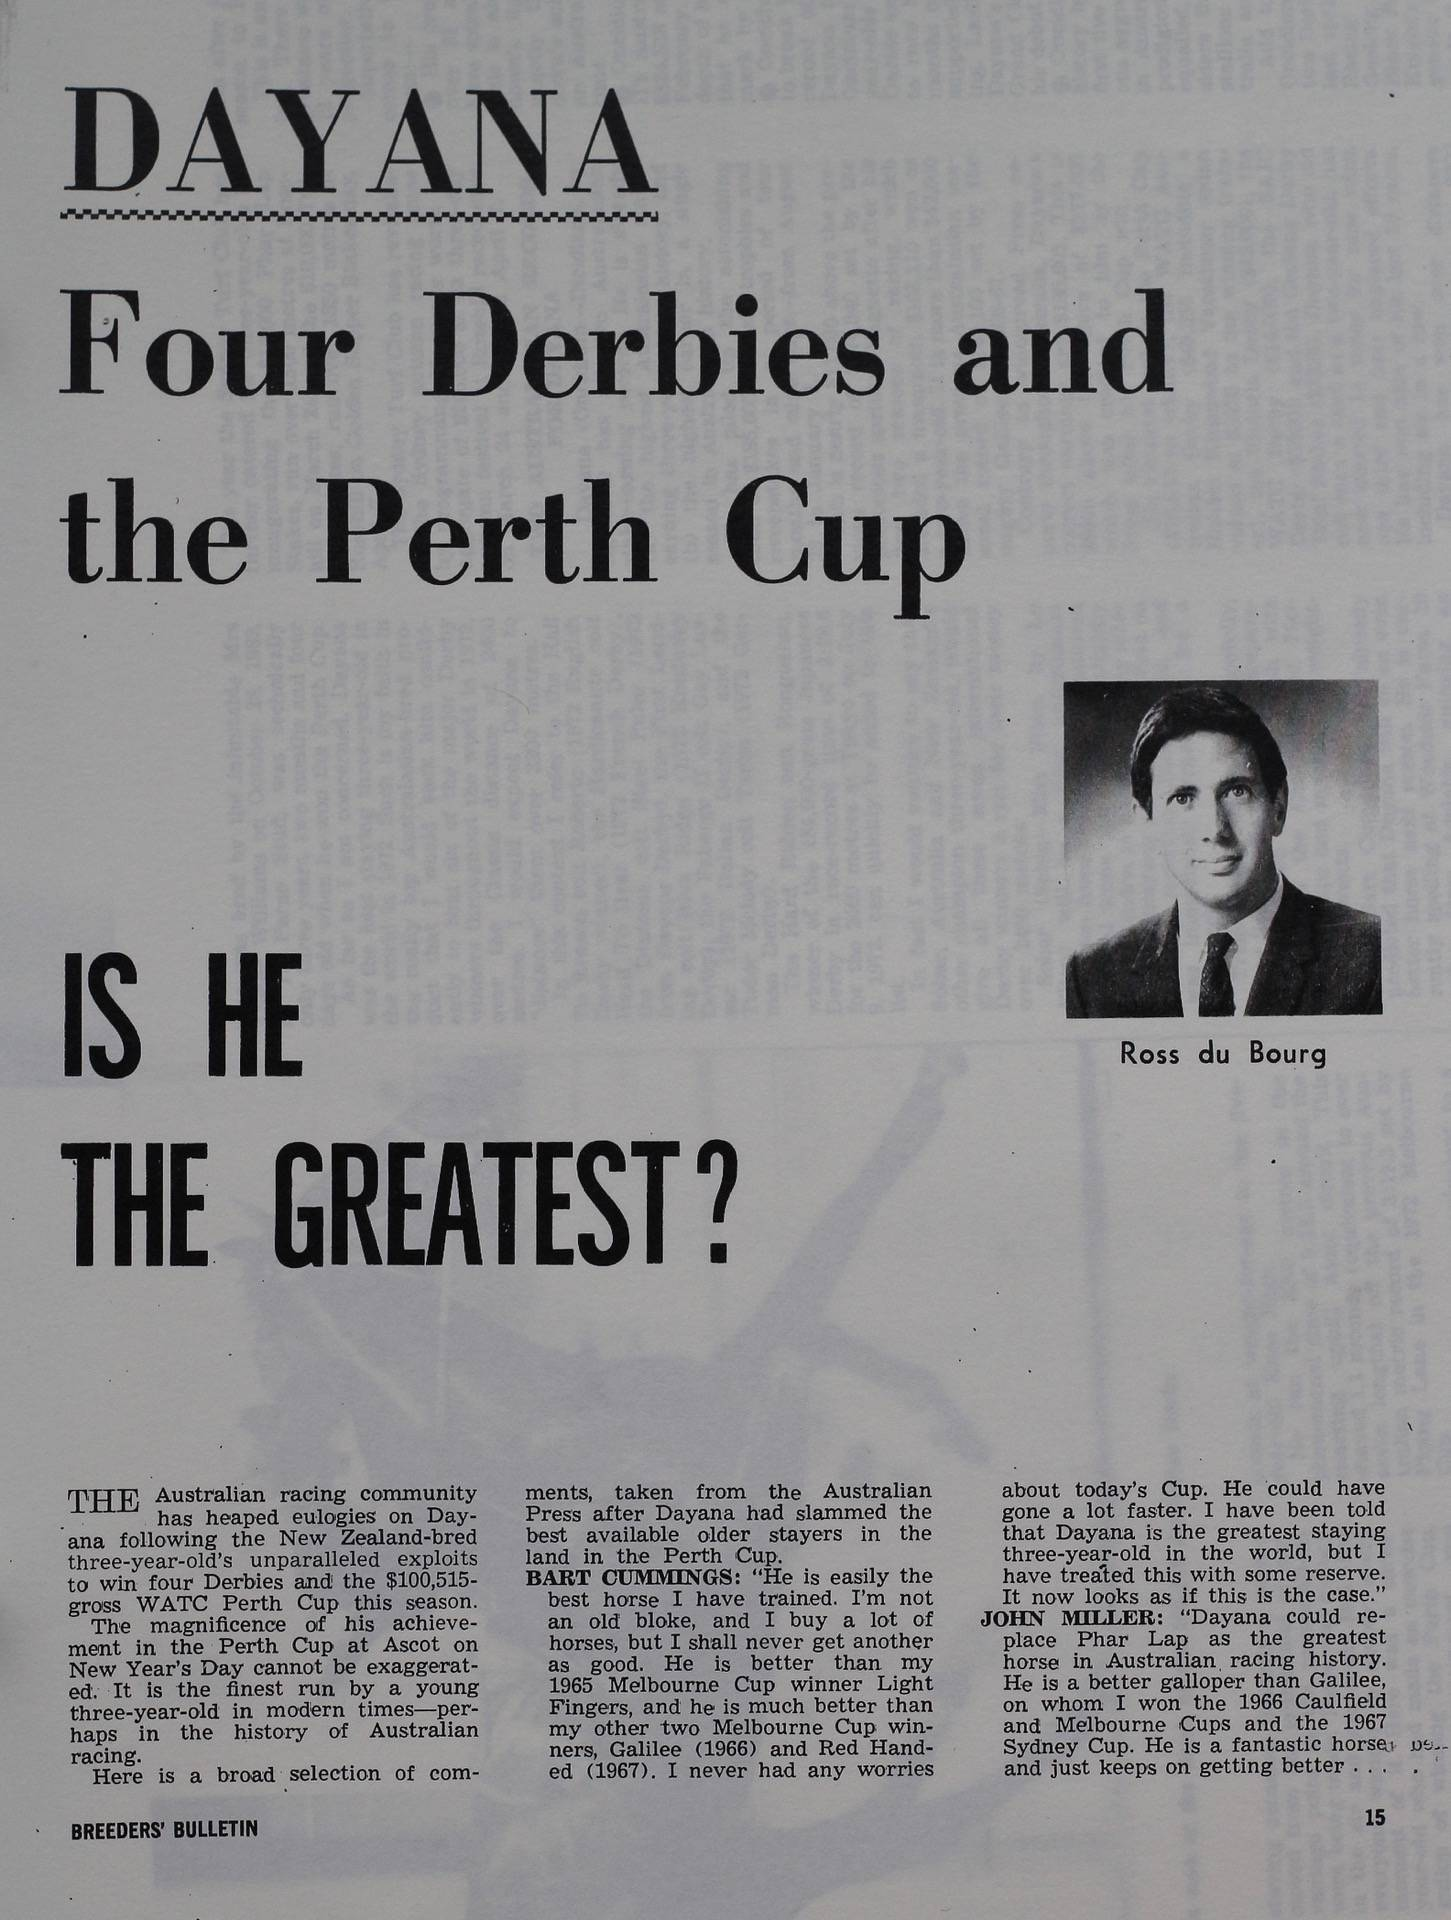 Dayana - Four derbies and the Perth cup